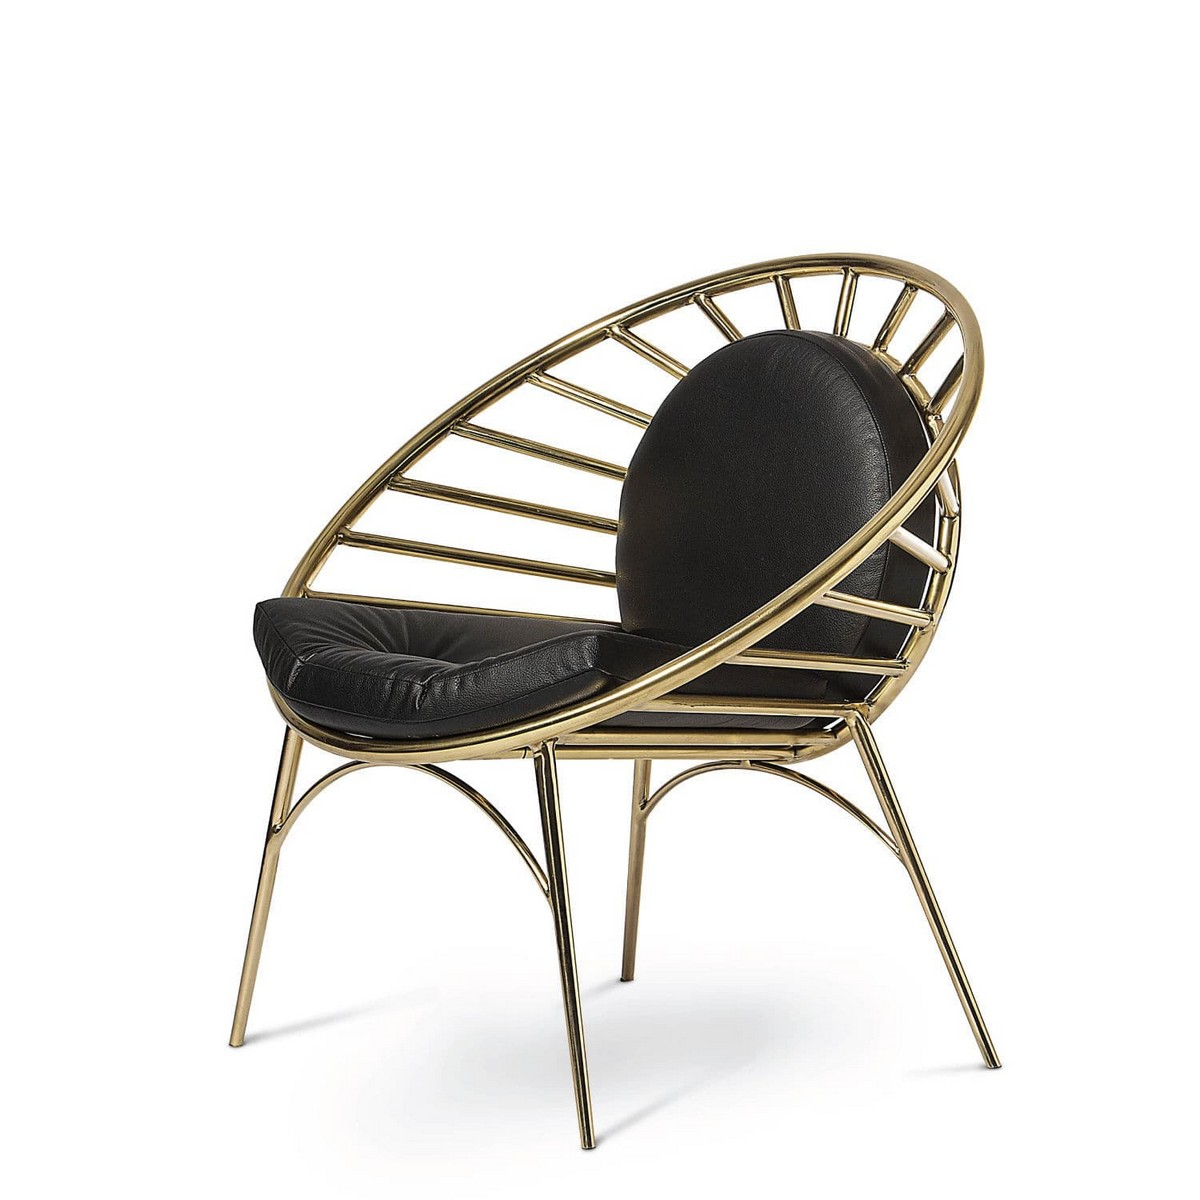 Maison et Objet 2019: Exclusive Dining Chairs at Covet House Maison et Objet Maison et Objet 2019: Exclusive Dining Chairs at Covet House reeves